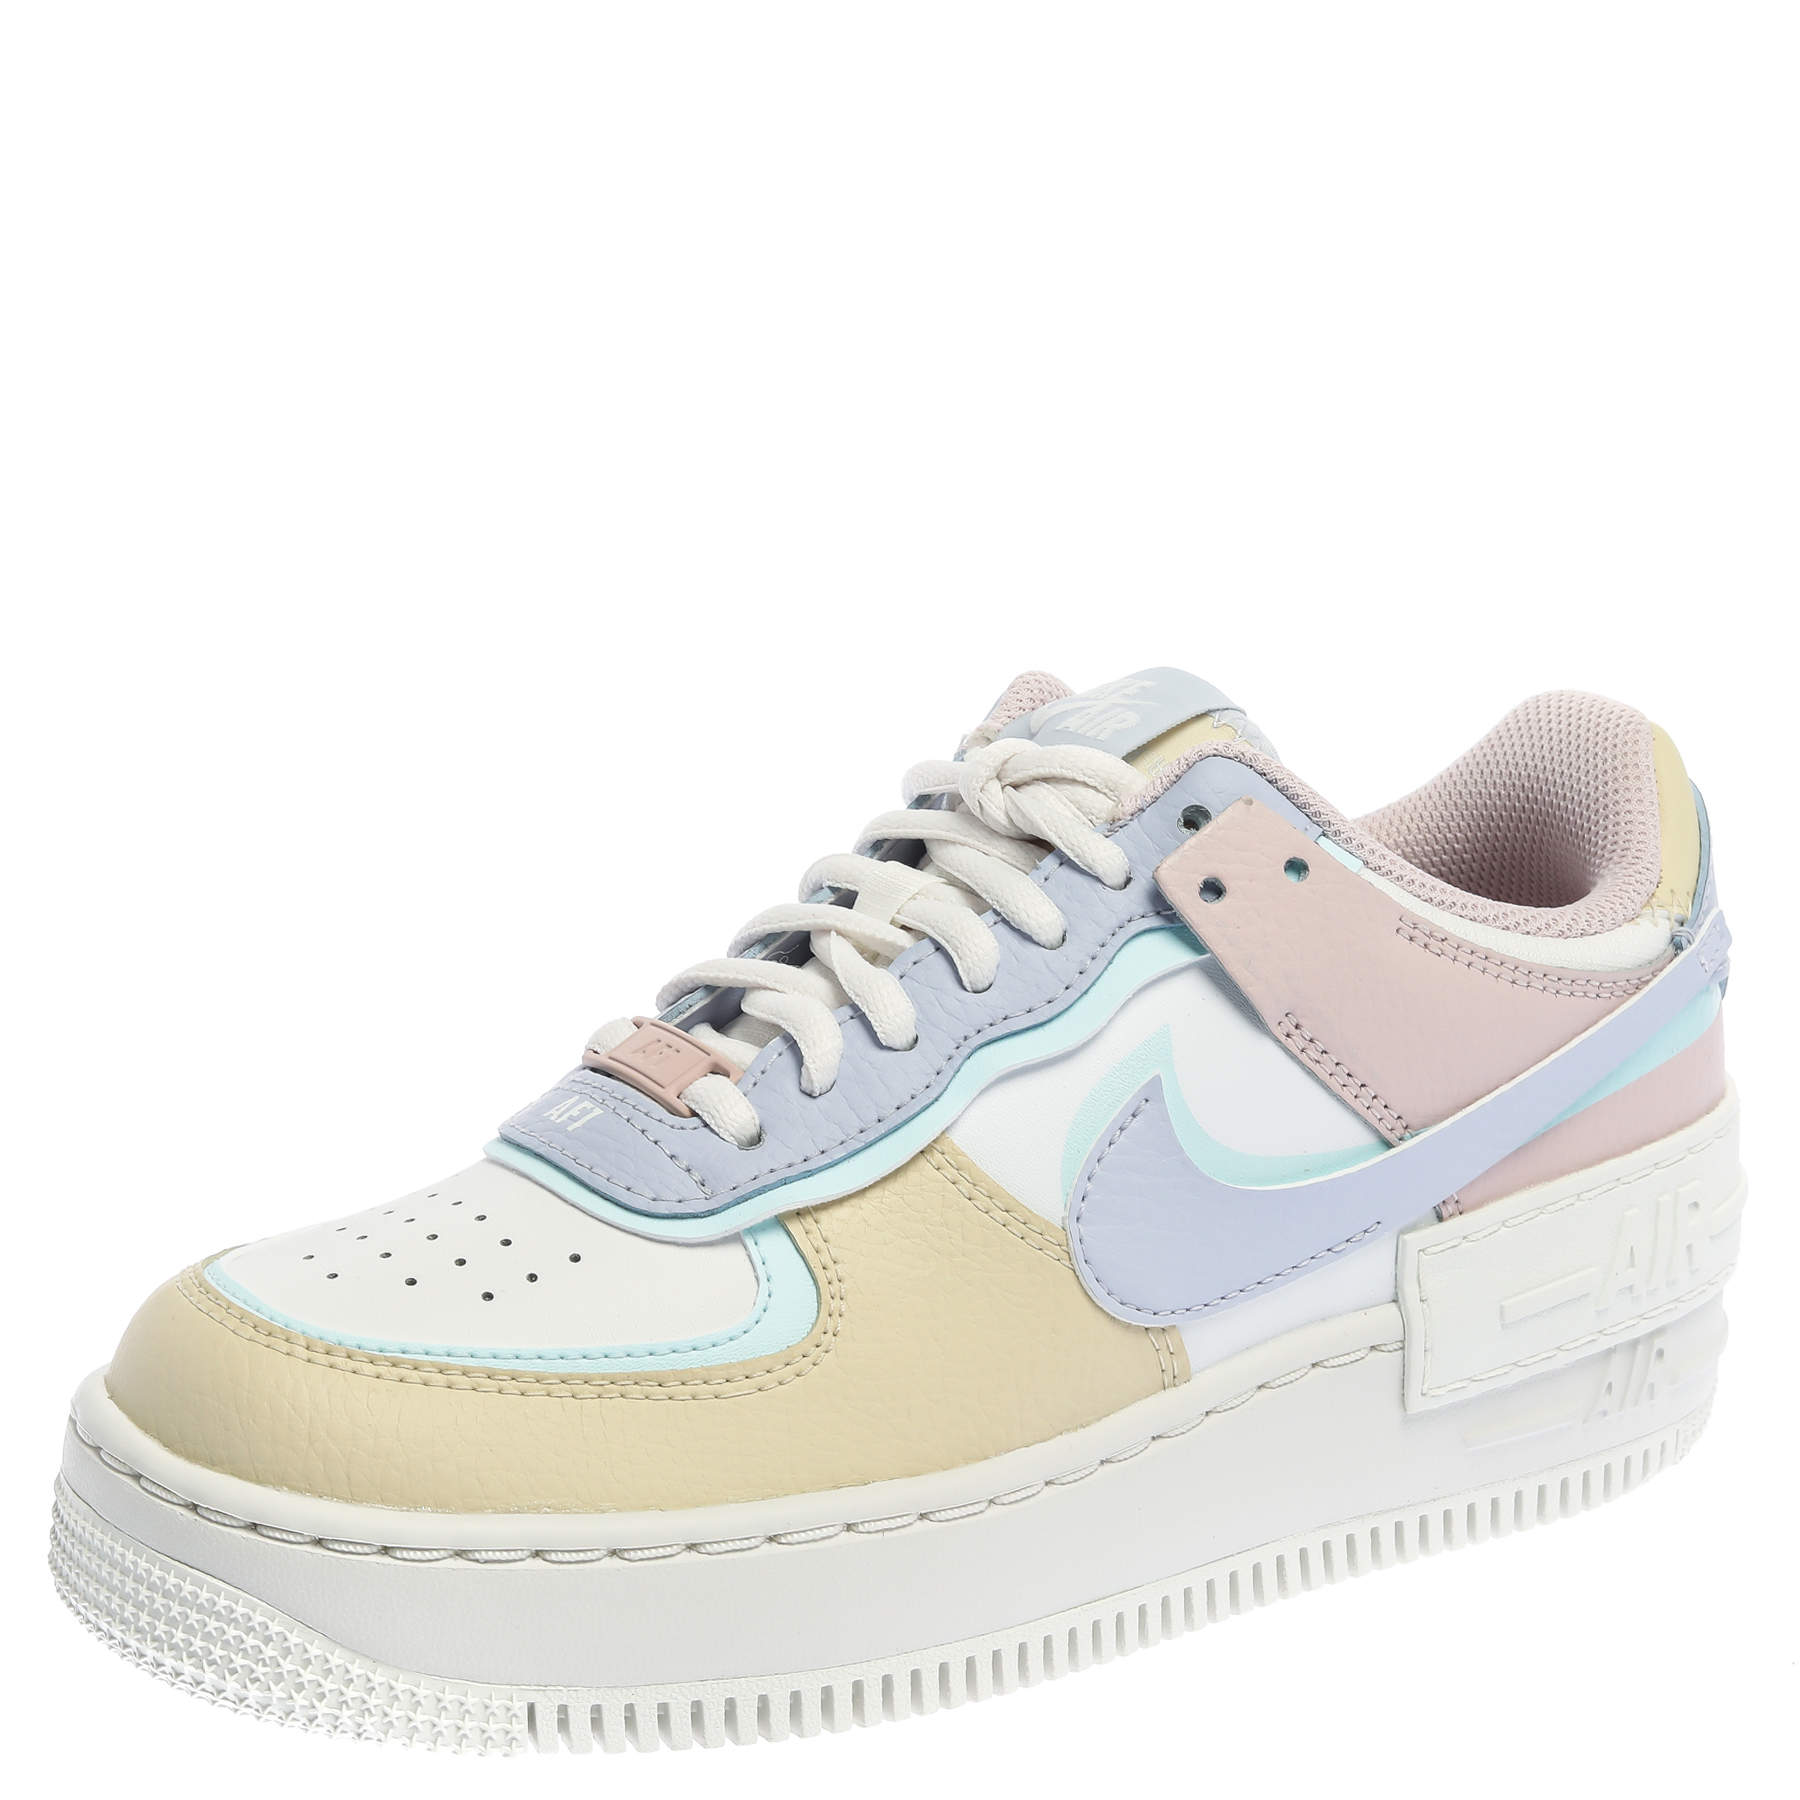 Nike Air Force 1 Pastel Low Top Sneakers Size 37.5